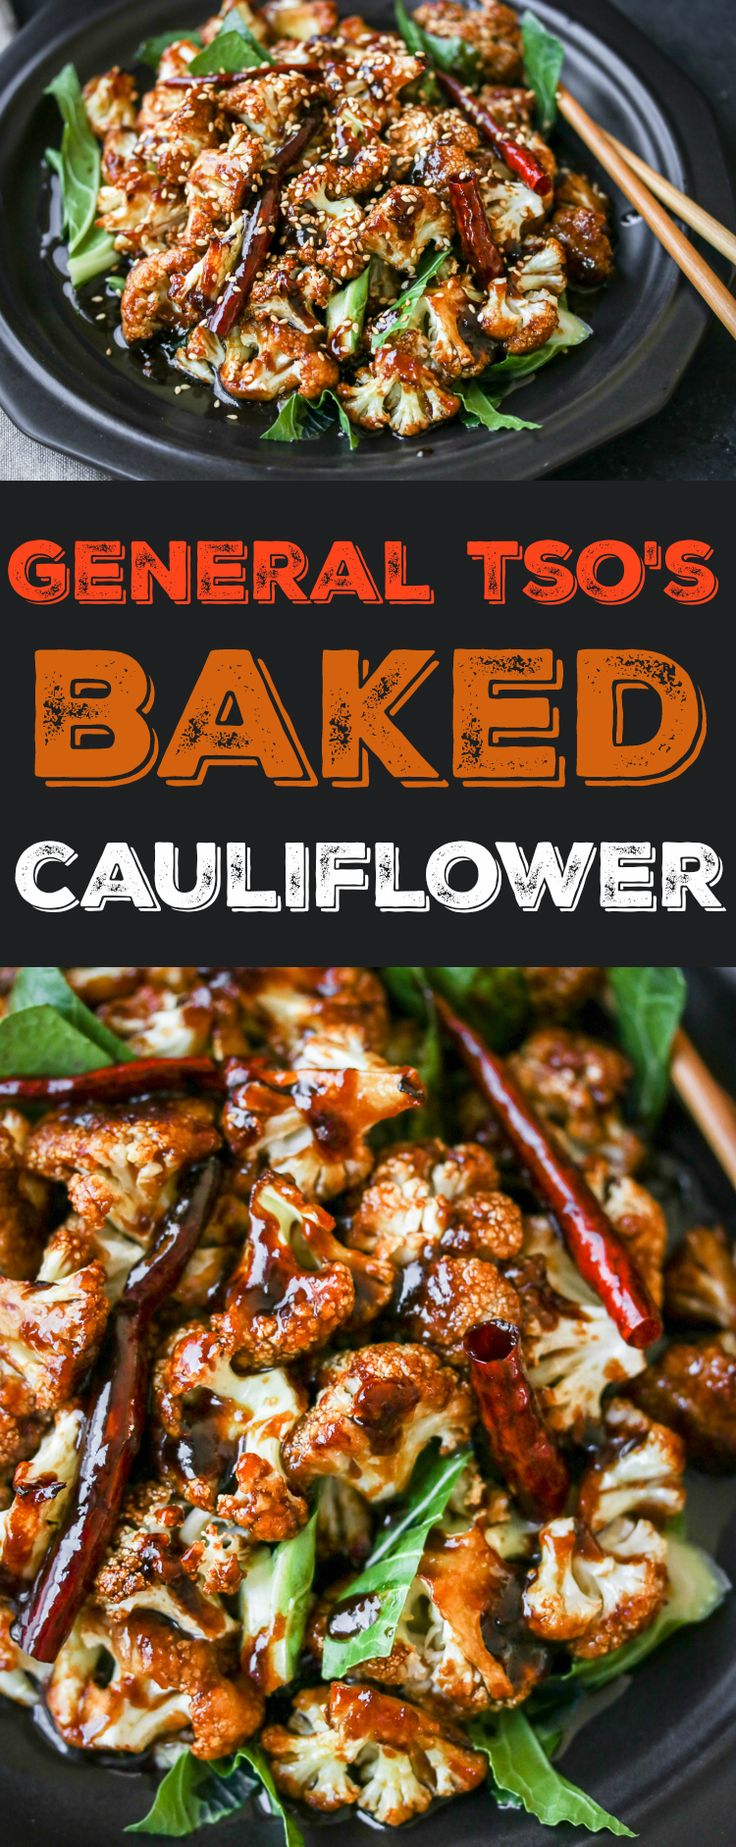 General Tso's Baked Cauliflower - easier, healthier, tastier!